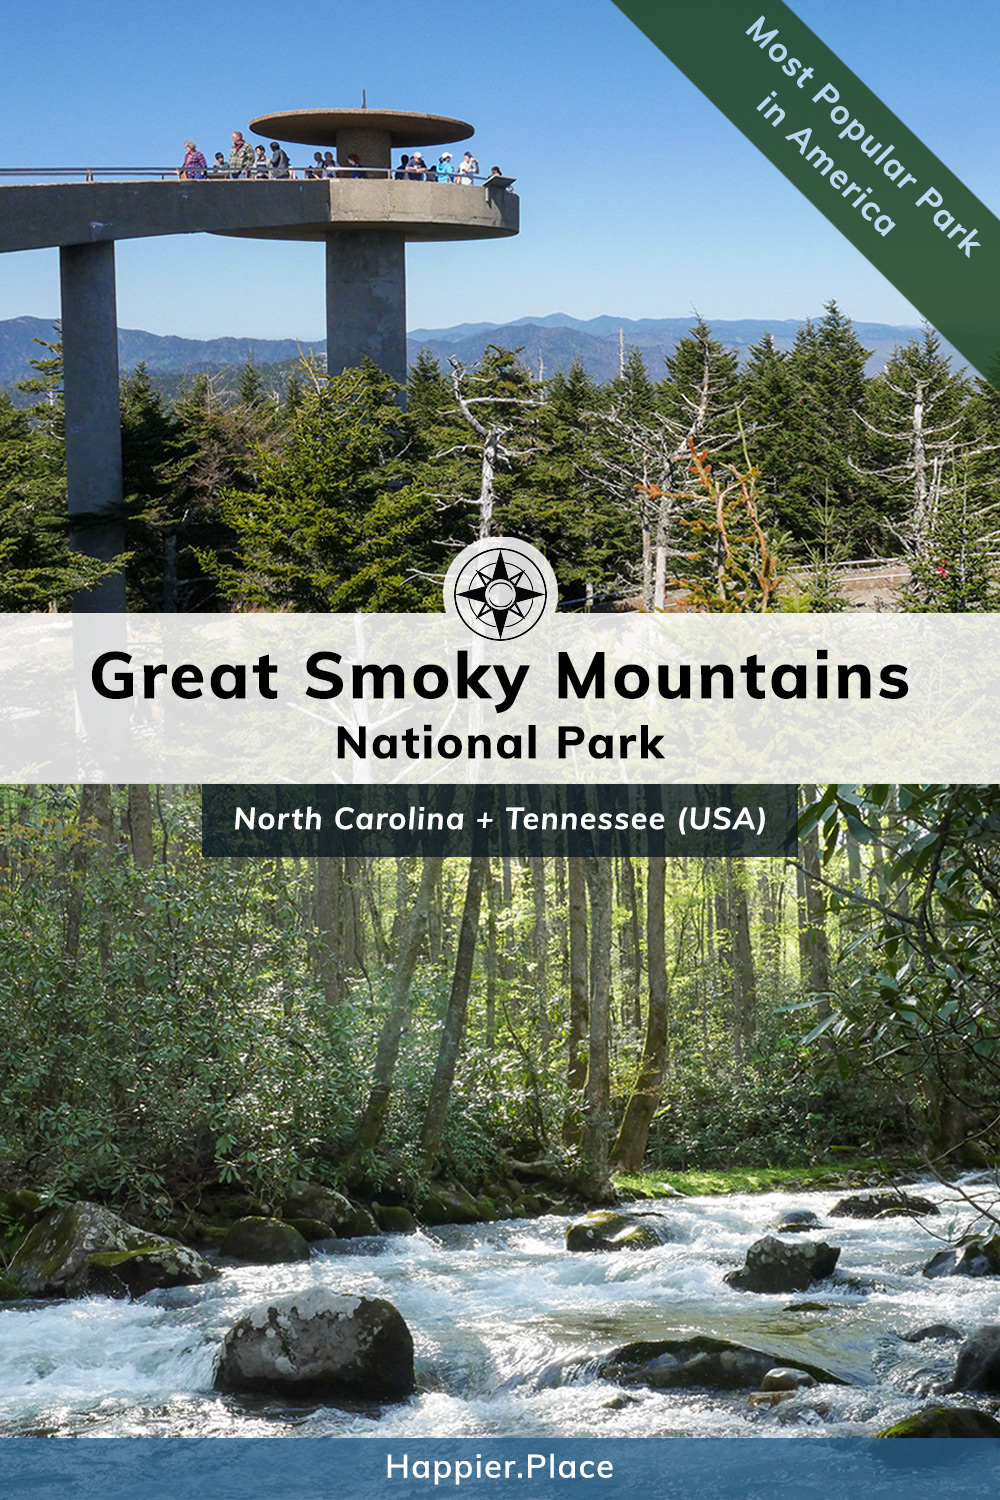 America\'s Most Popular Park: Great Smoky Mountains National Park in North Carolina and Tennessee  #HappierPlace #USA #NationalPark #travelguide #outdoor #hiking #travel #Tennessee #NorthCarolina